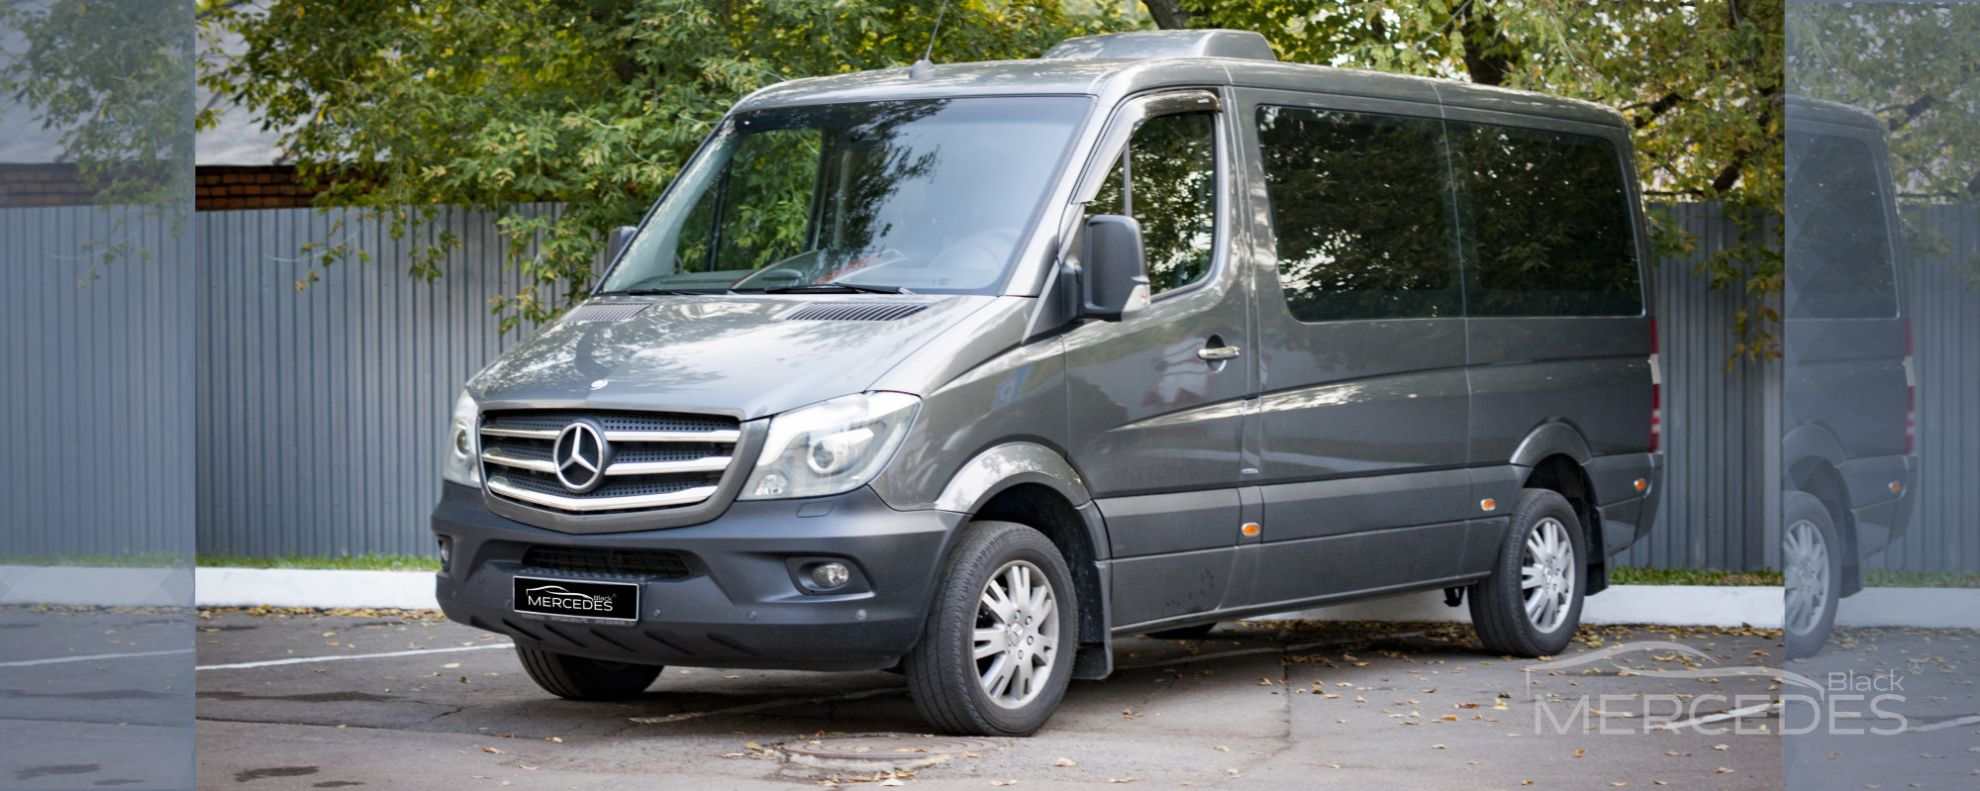 Mercedes Sprinter LUX-0